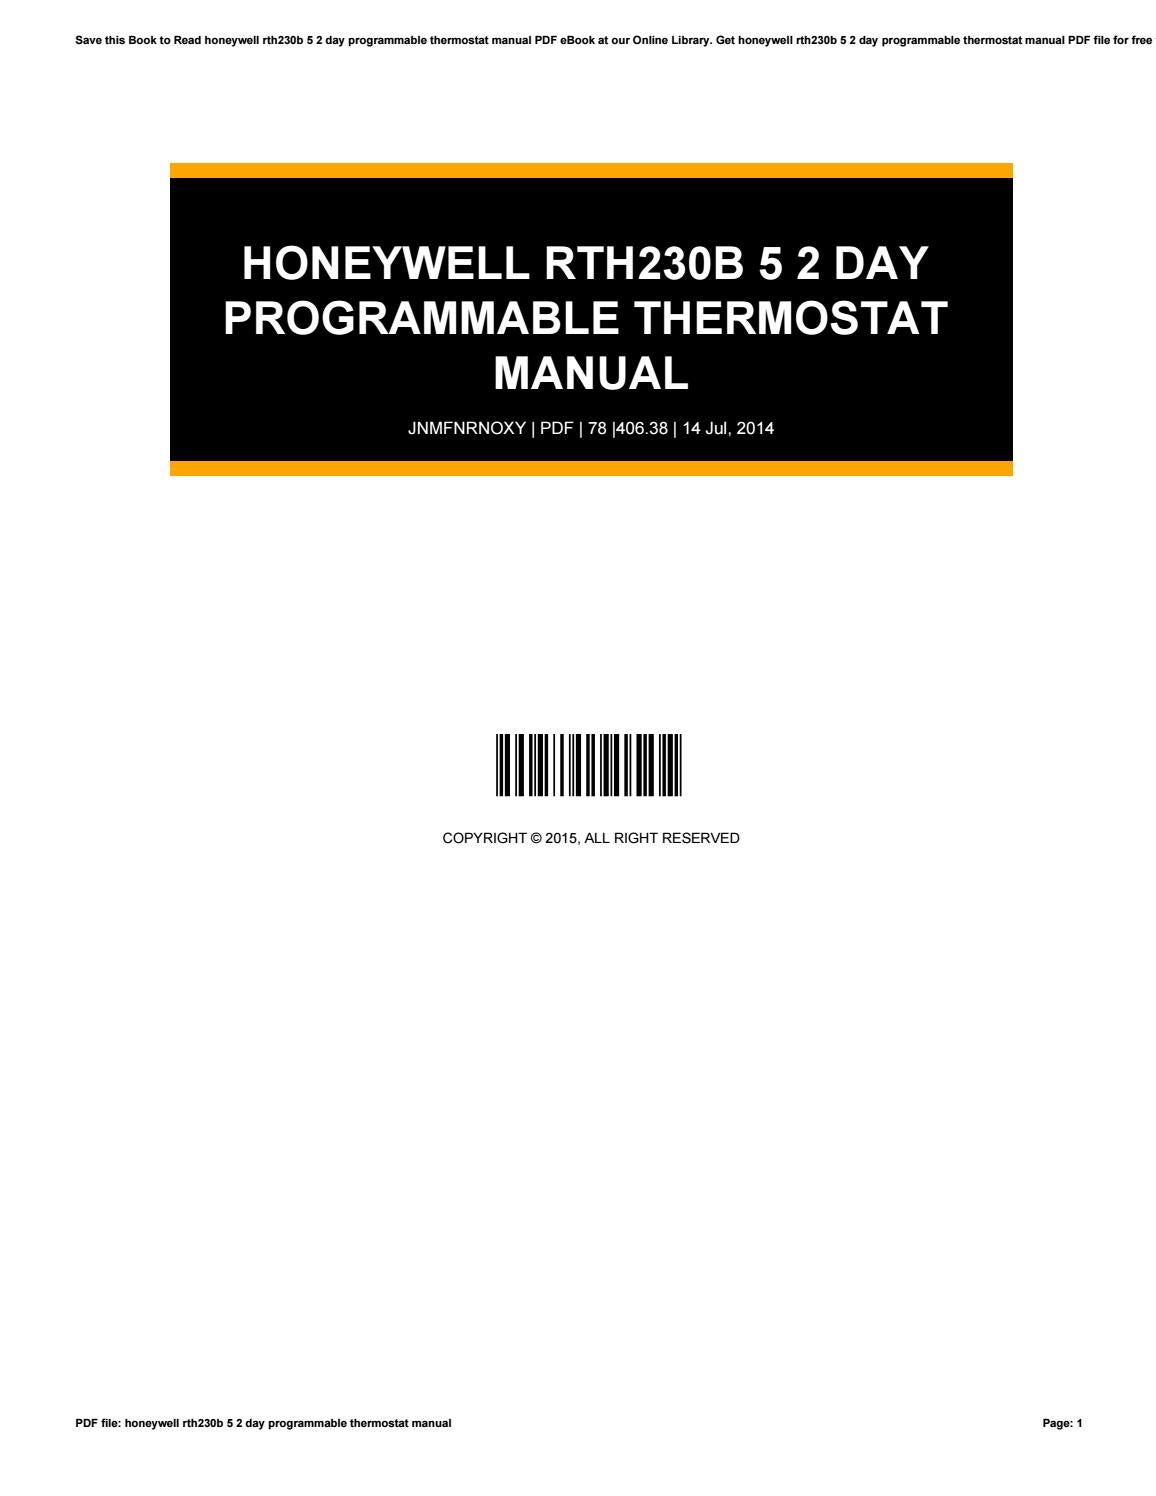 Honeywell rth230b 5 2 day programmable thermostat manual by ShawnCass4950 -  issuu